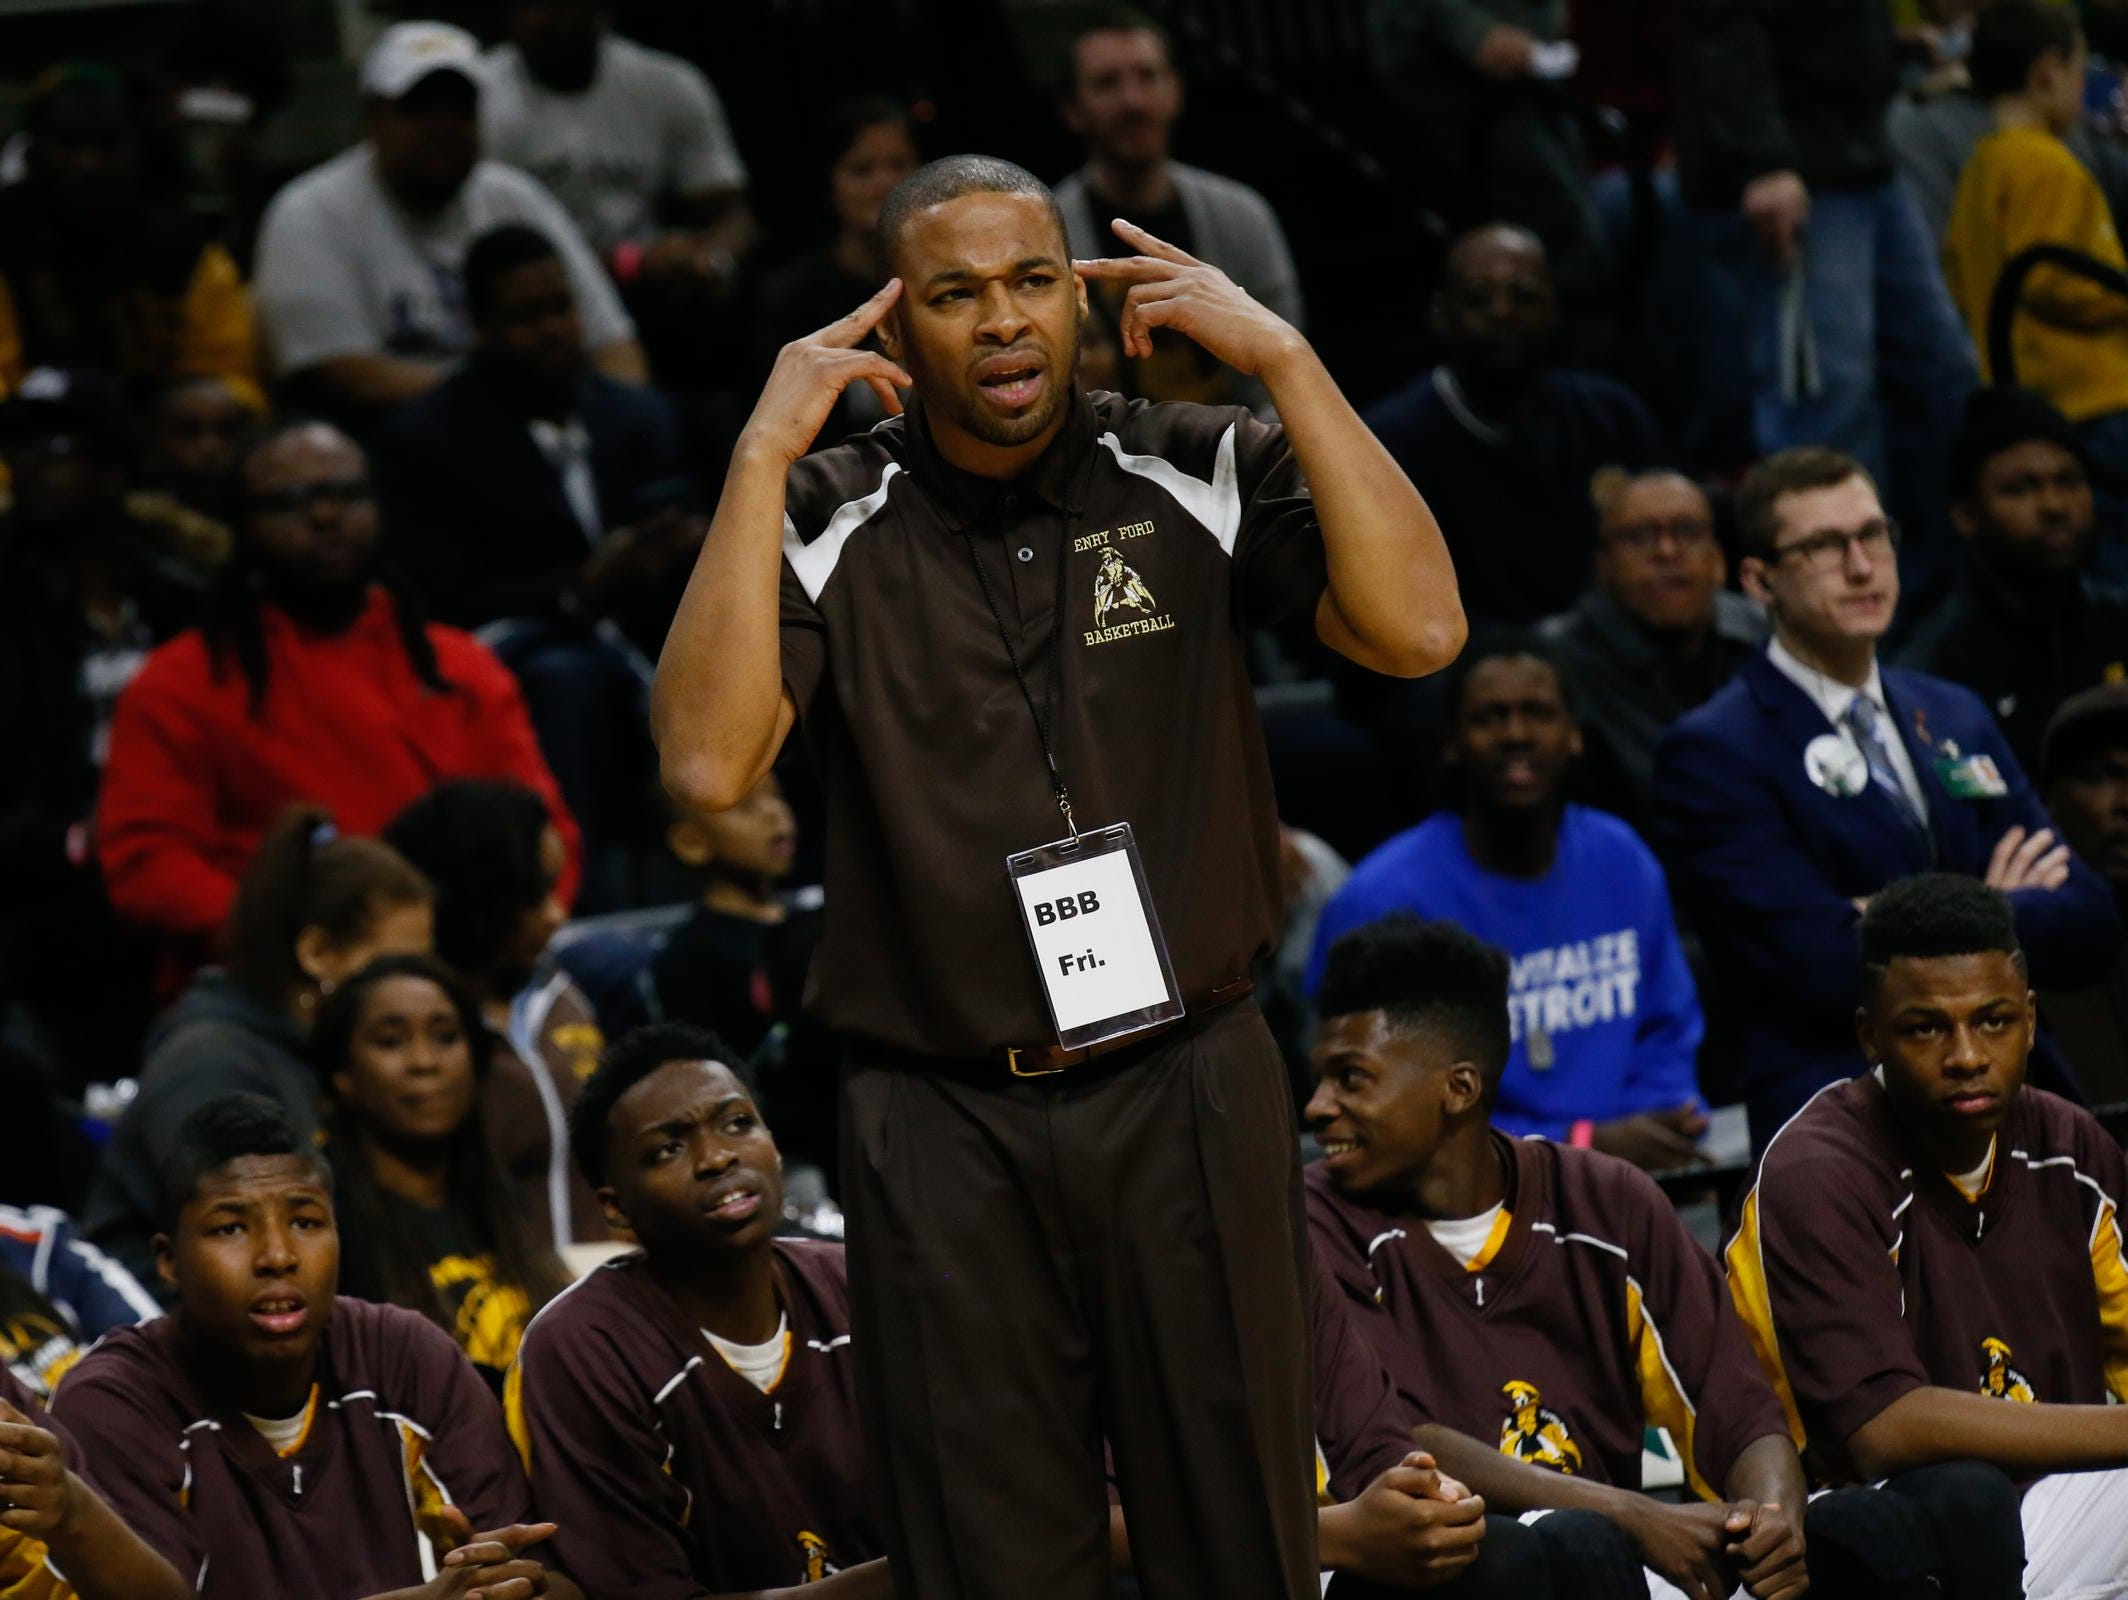 Detroit Henry Ford coach Ken Flowers tells his players to think during their 70-48 semifinal win over Williamston.